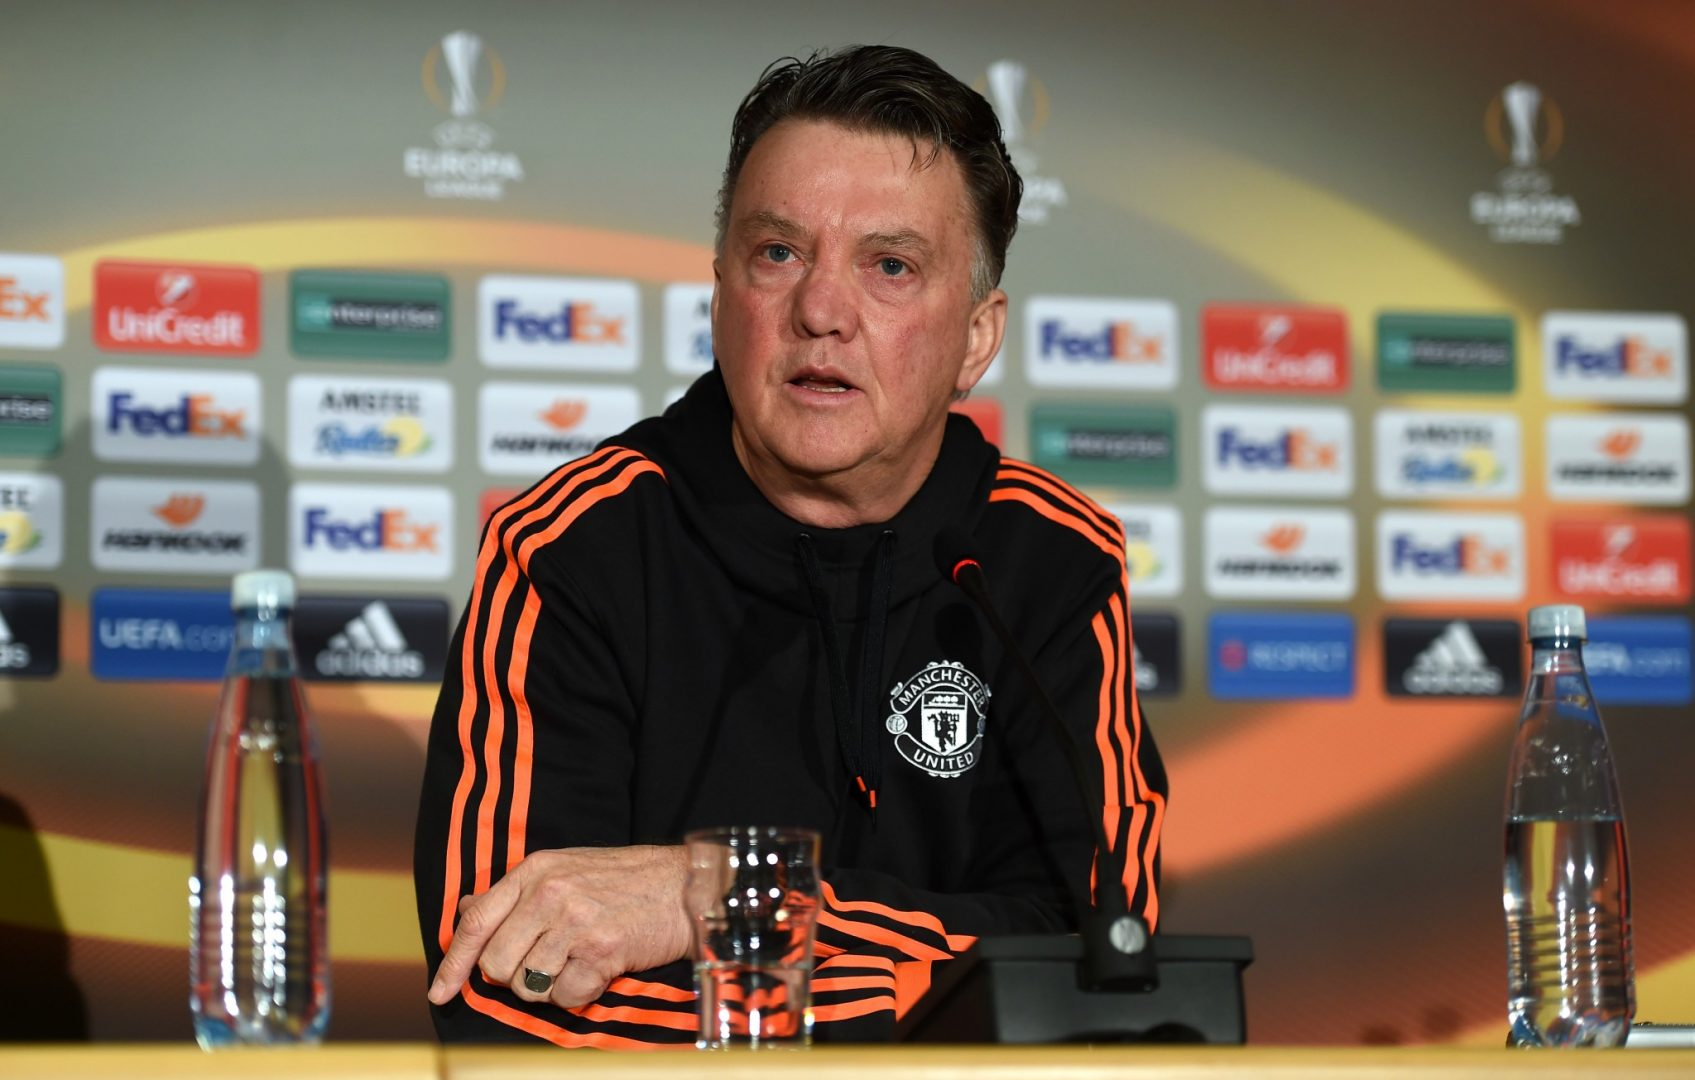 Louis van Gaal in a Manchester United press conference ahead of their latest Europa League fixture.